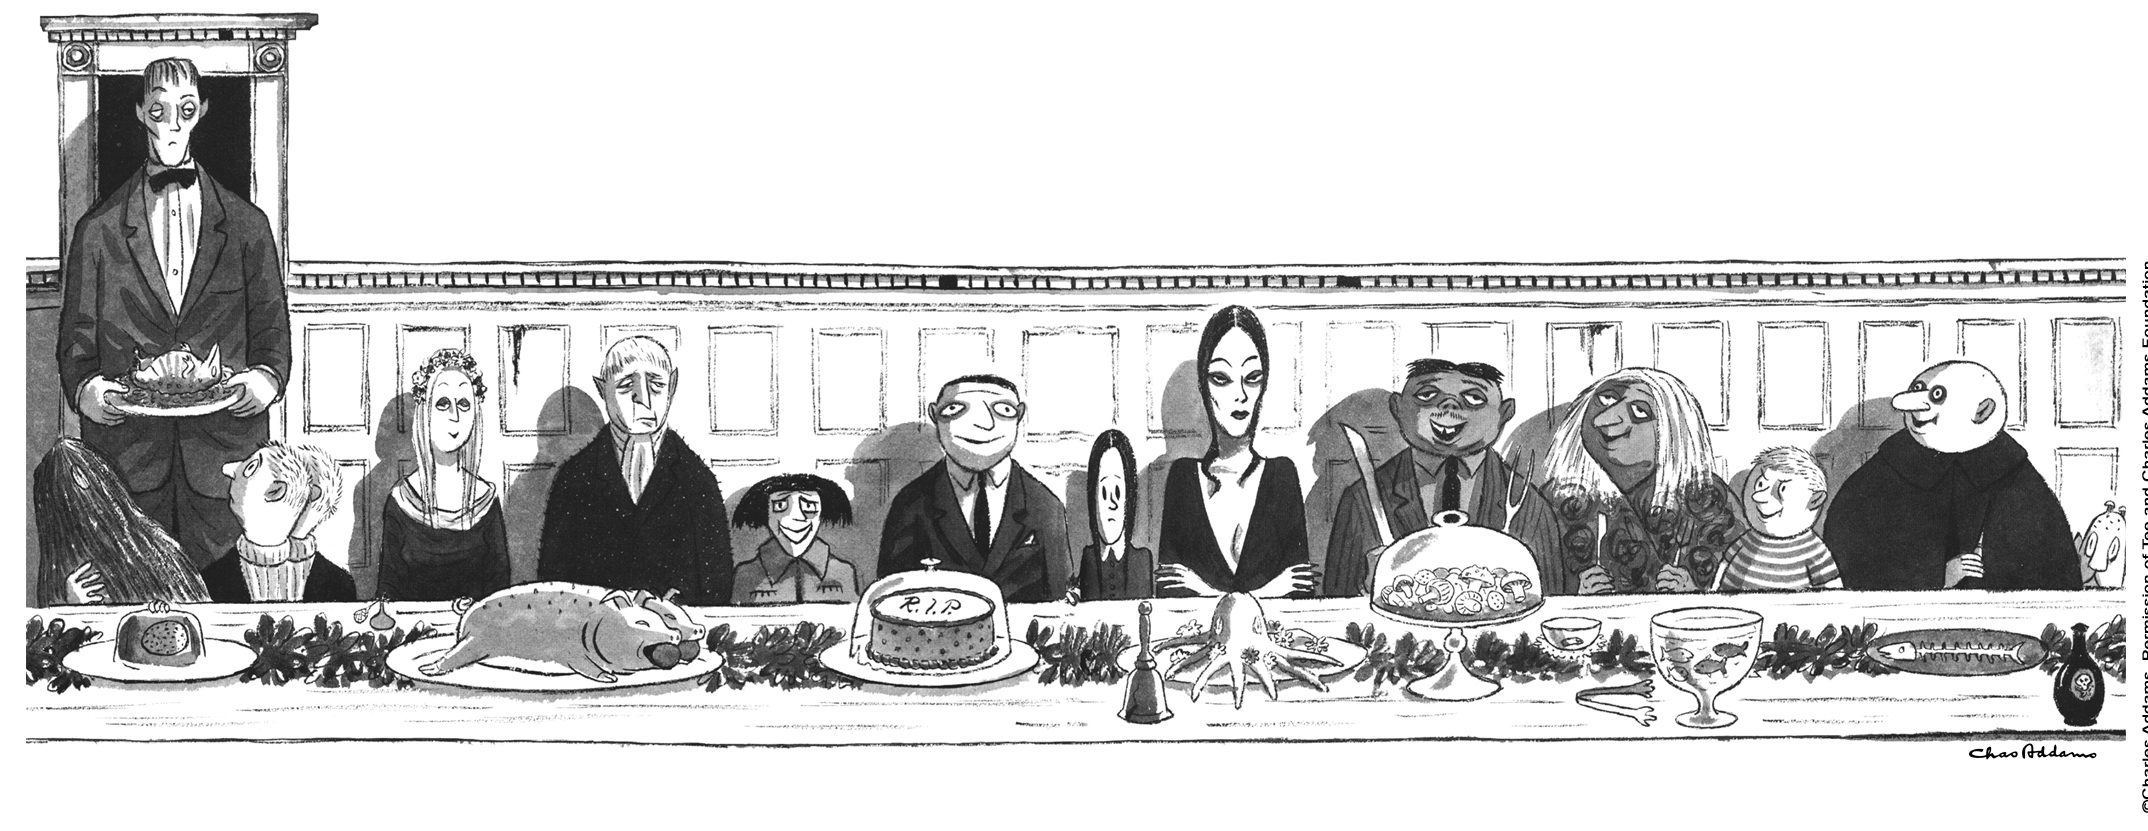 Image from The Charles Addams Foundation